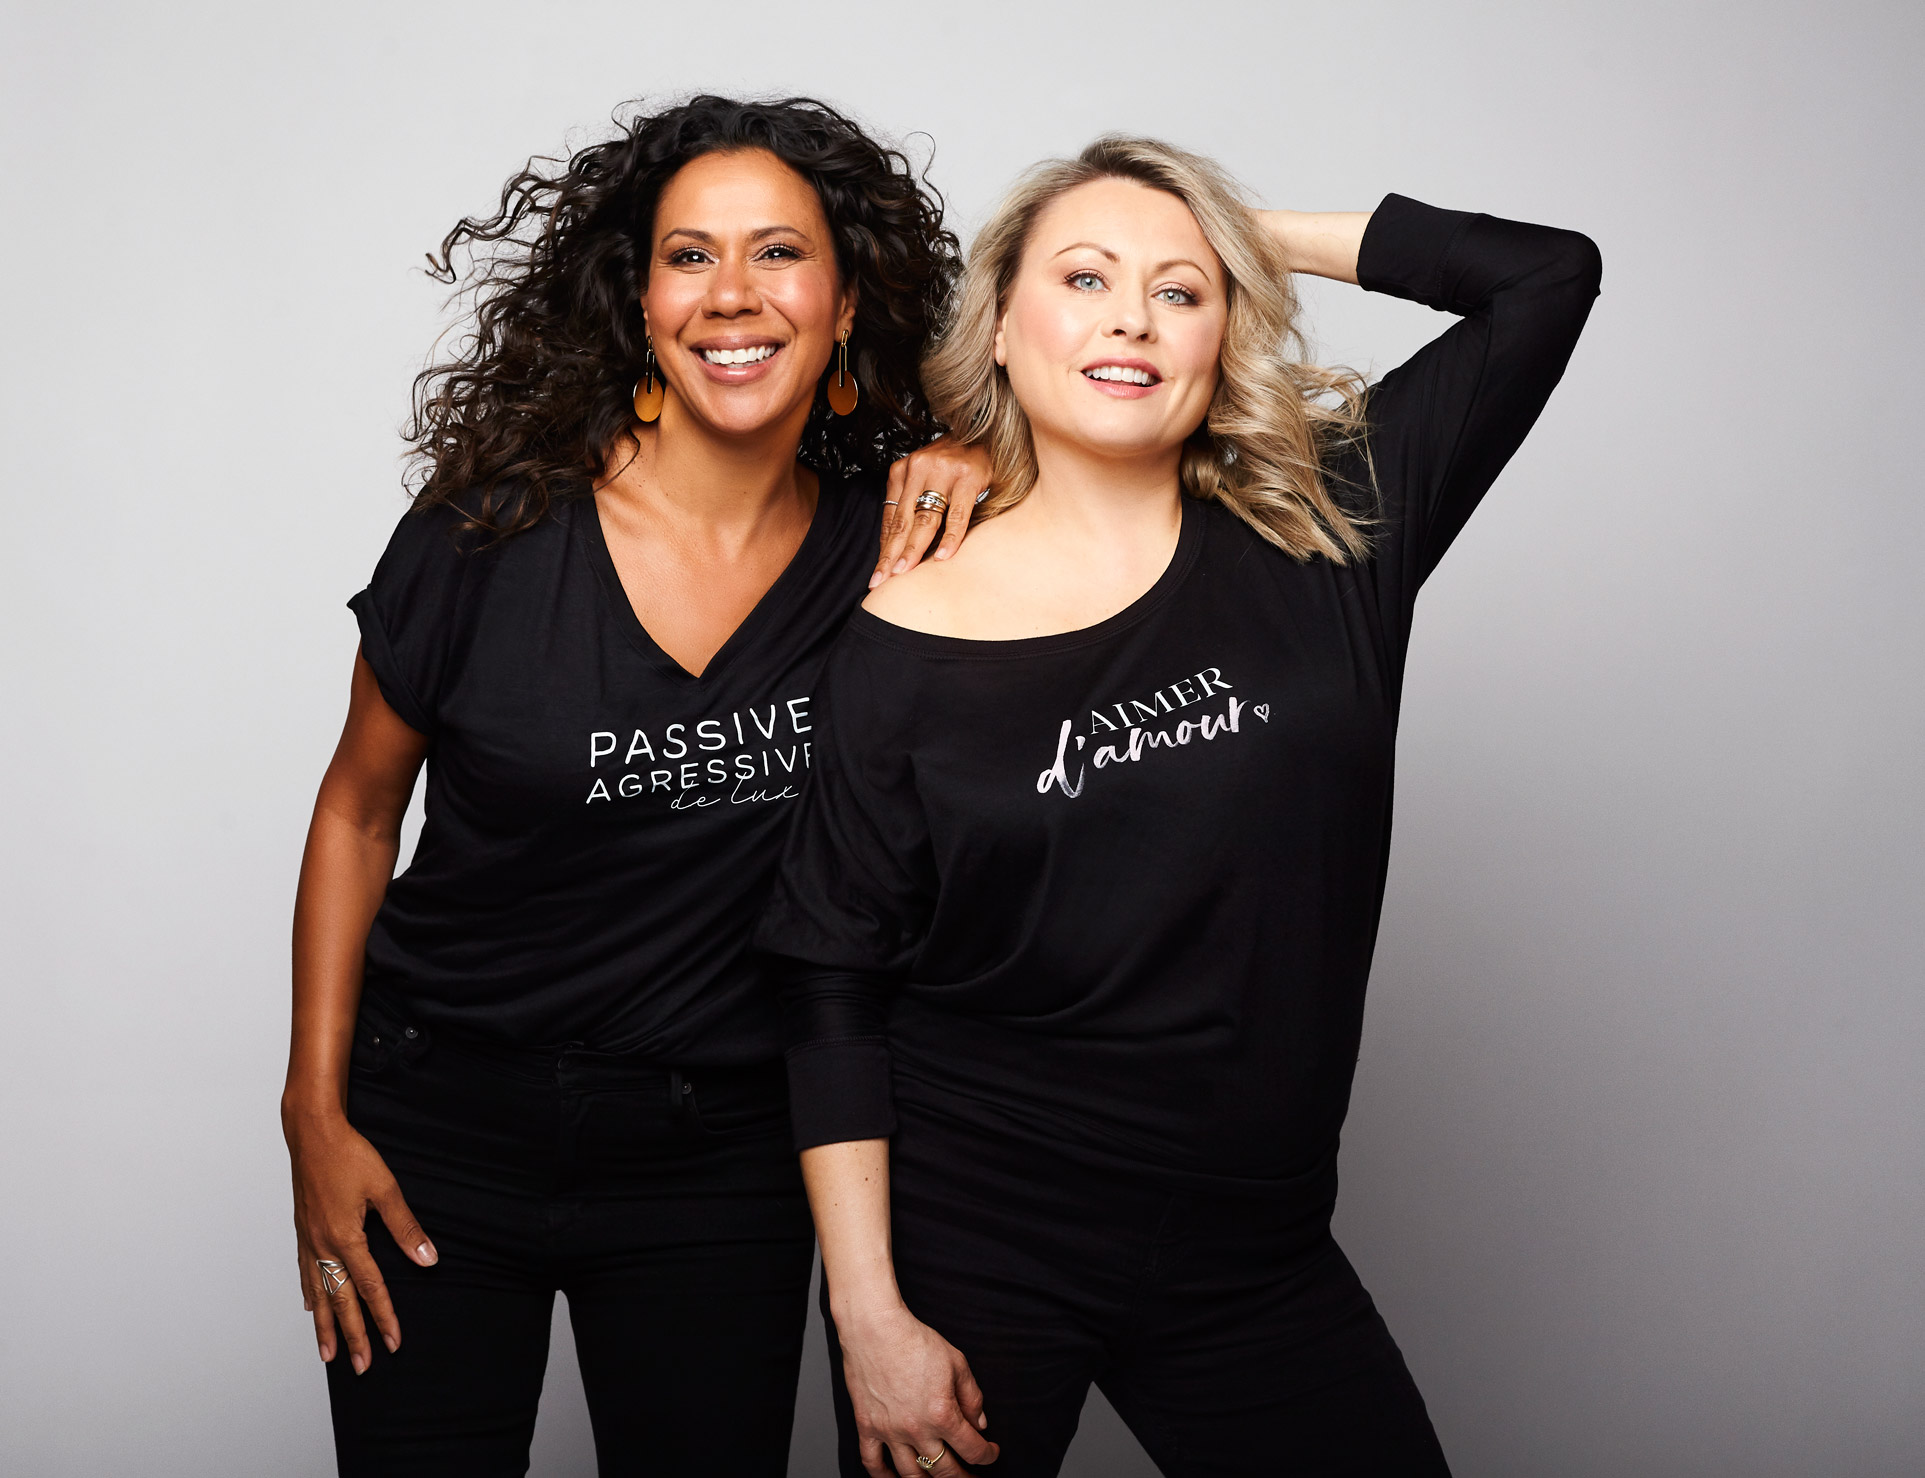 Photo portrait of Quebec celebrities Isabelle Racicot and Mitsou Gélinas for the Mitsou online store. Photograph by Dariane Sanche in Montreal.